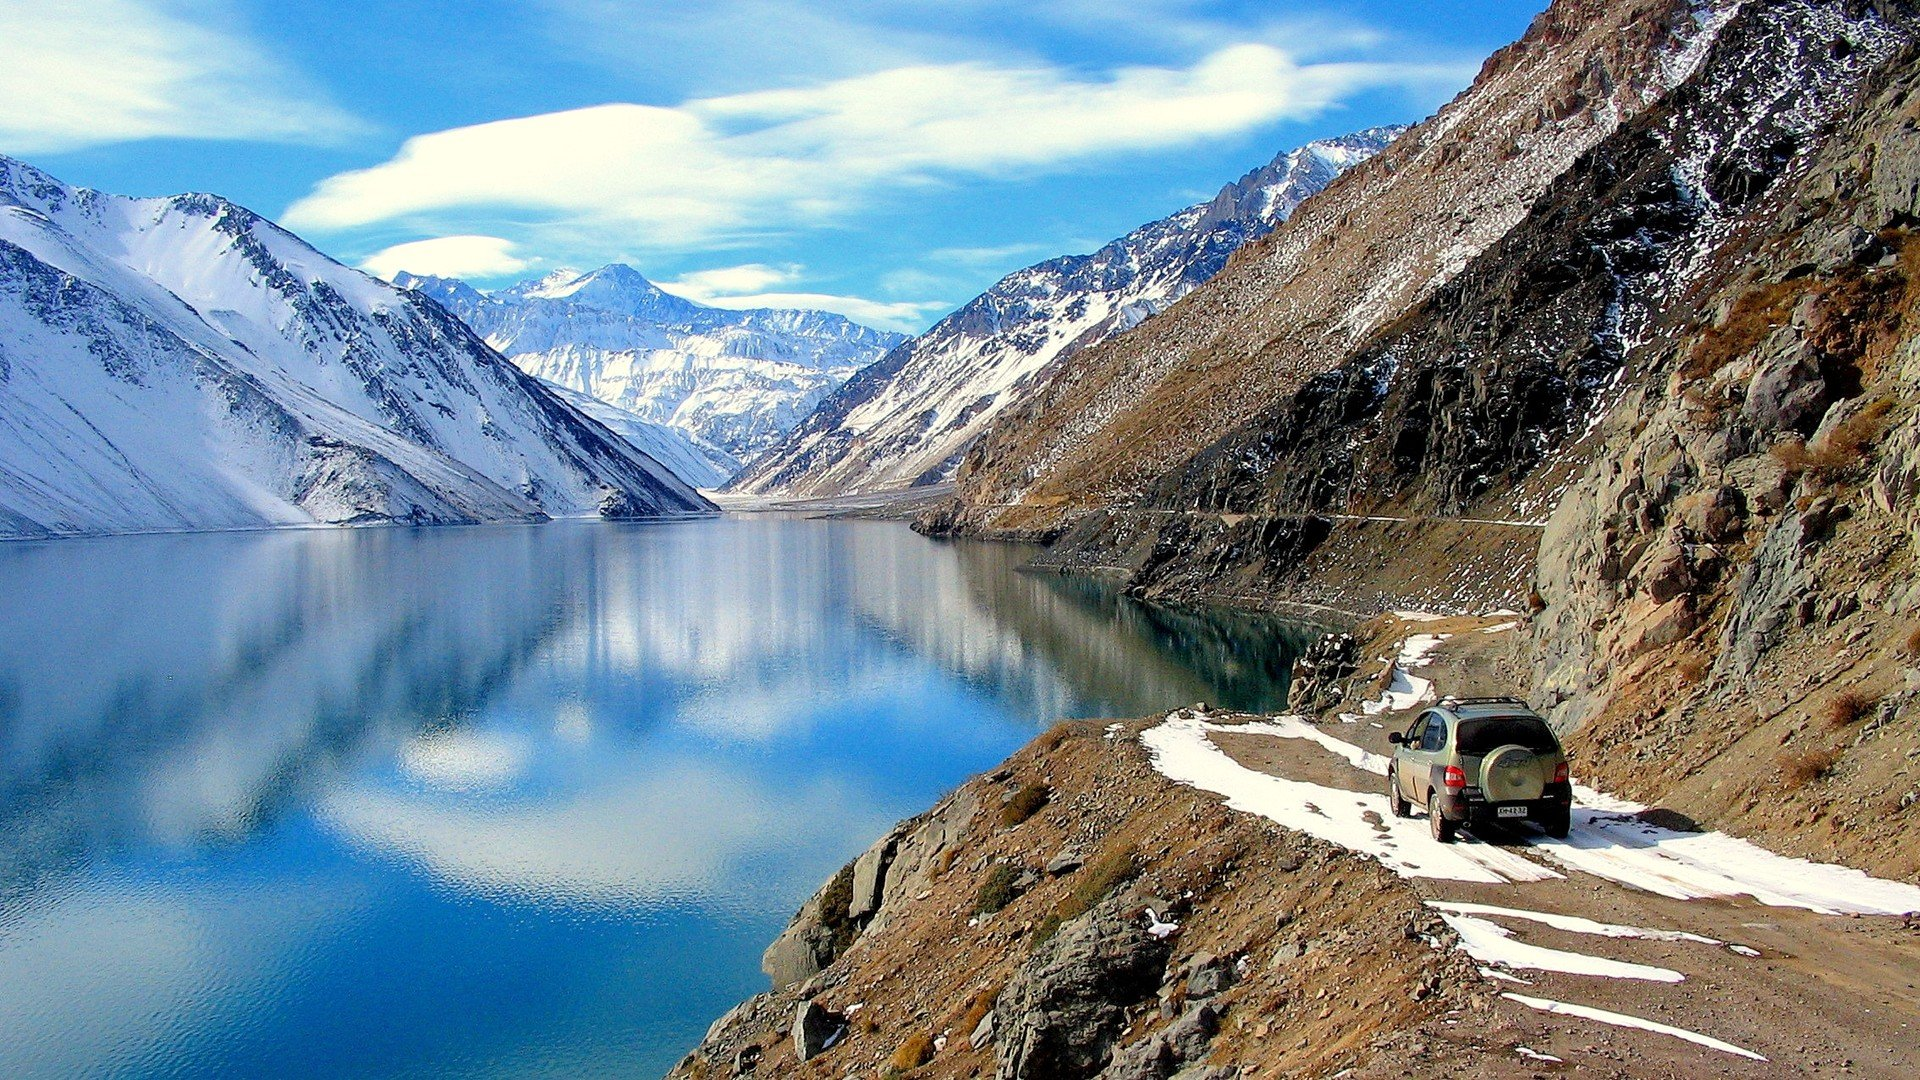 Simple Wallpaper Mountain Water - Water-Chile-Mountains-Clouds-1920-x-1080  Pictures_41469.jpg